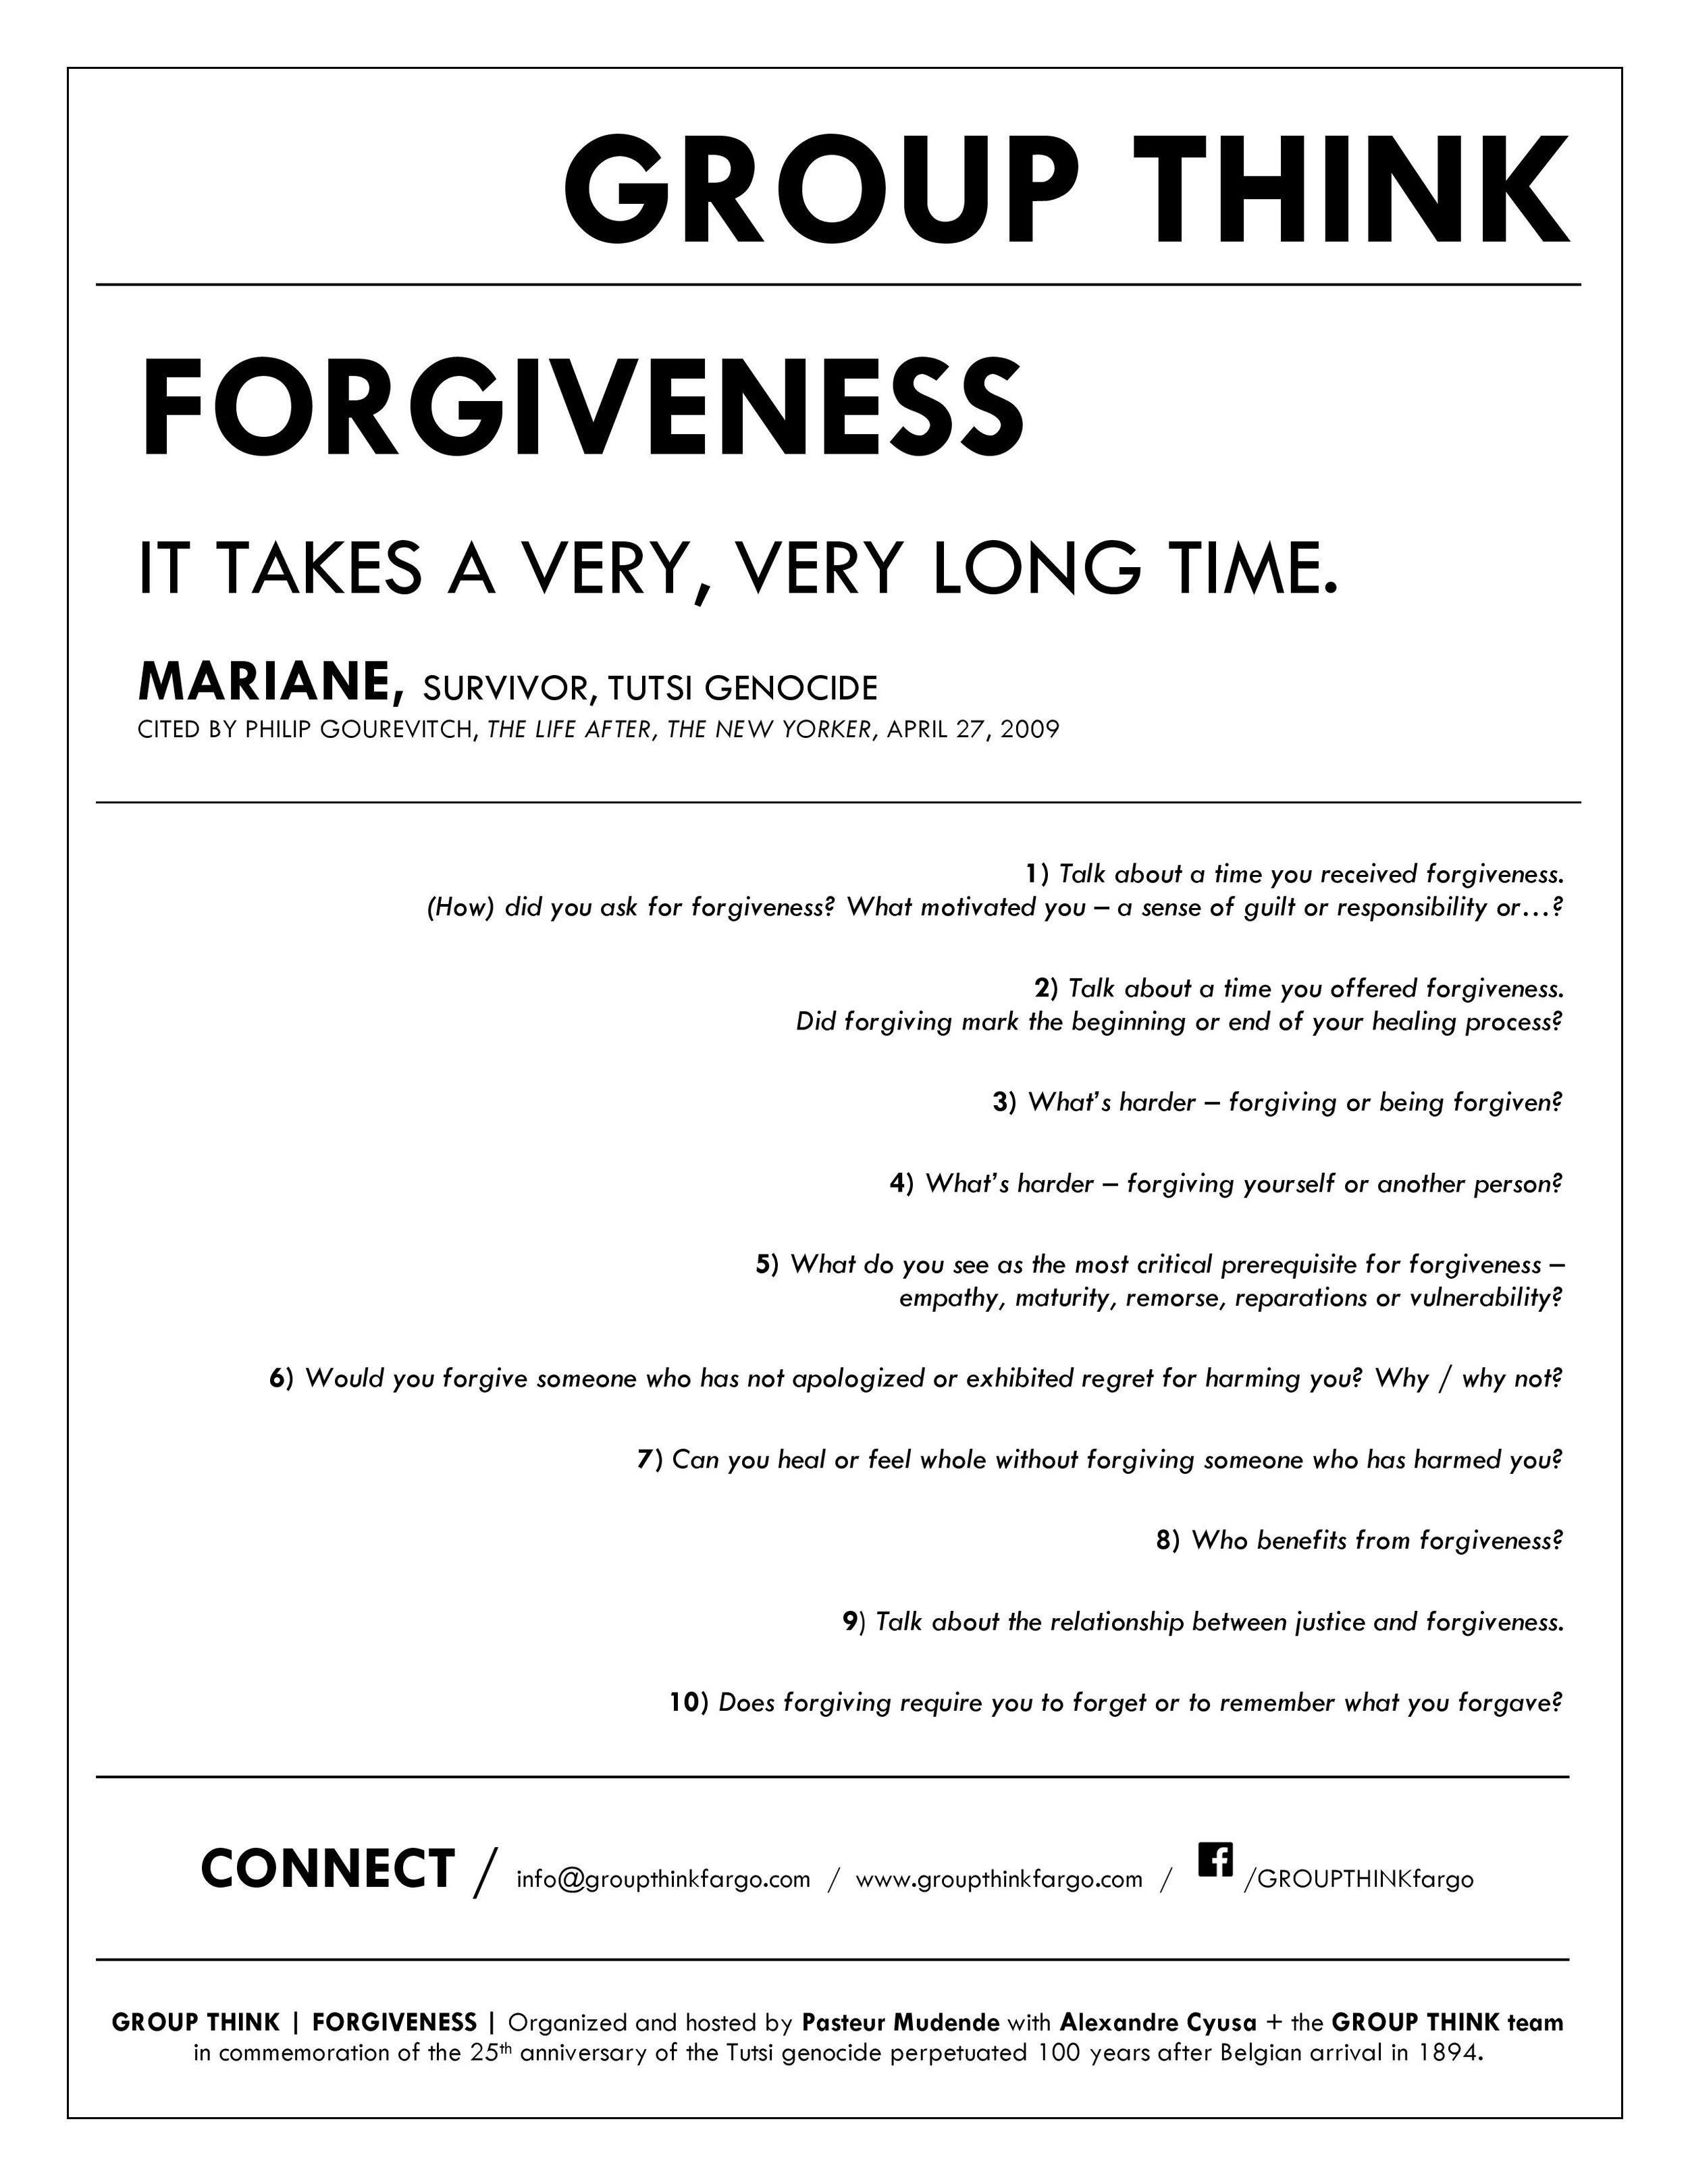 GROUP THINK - 05.2019 - FORGIVENESS handout-1.jpg